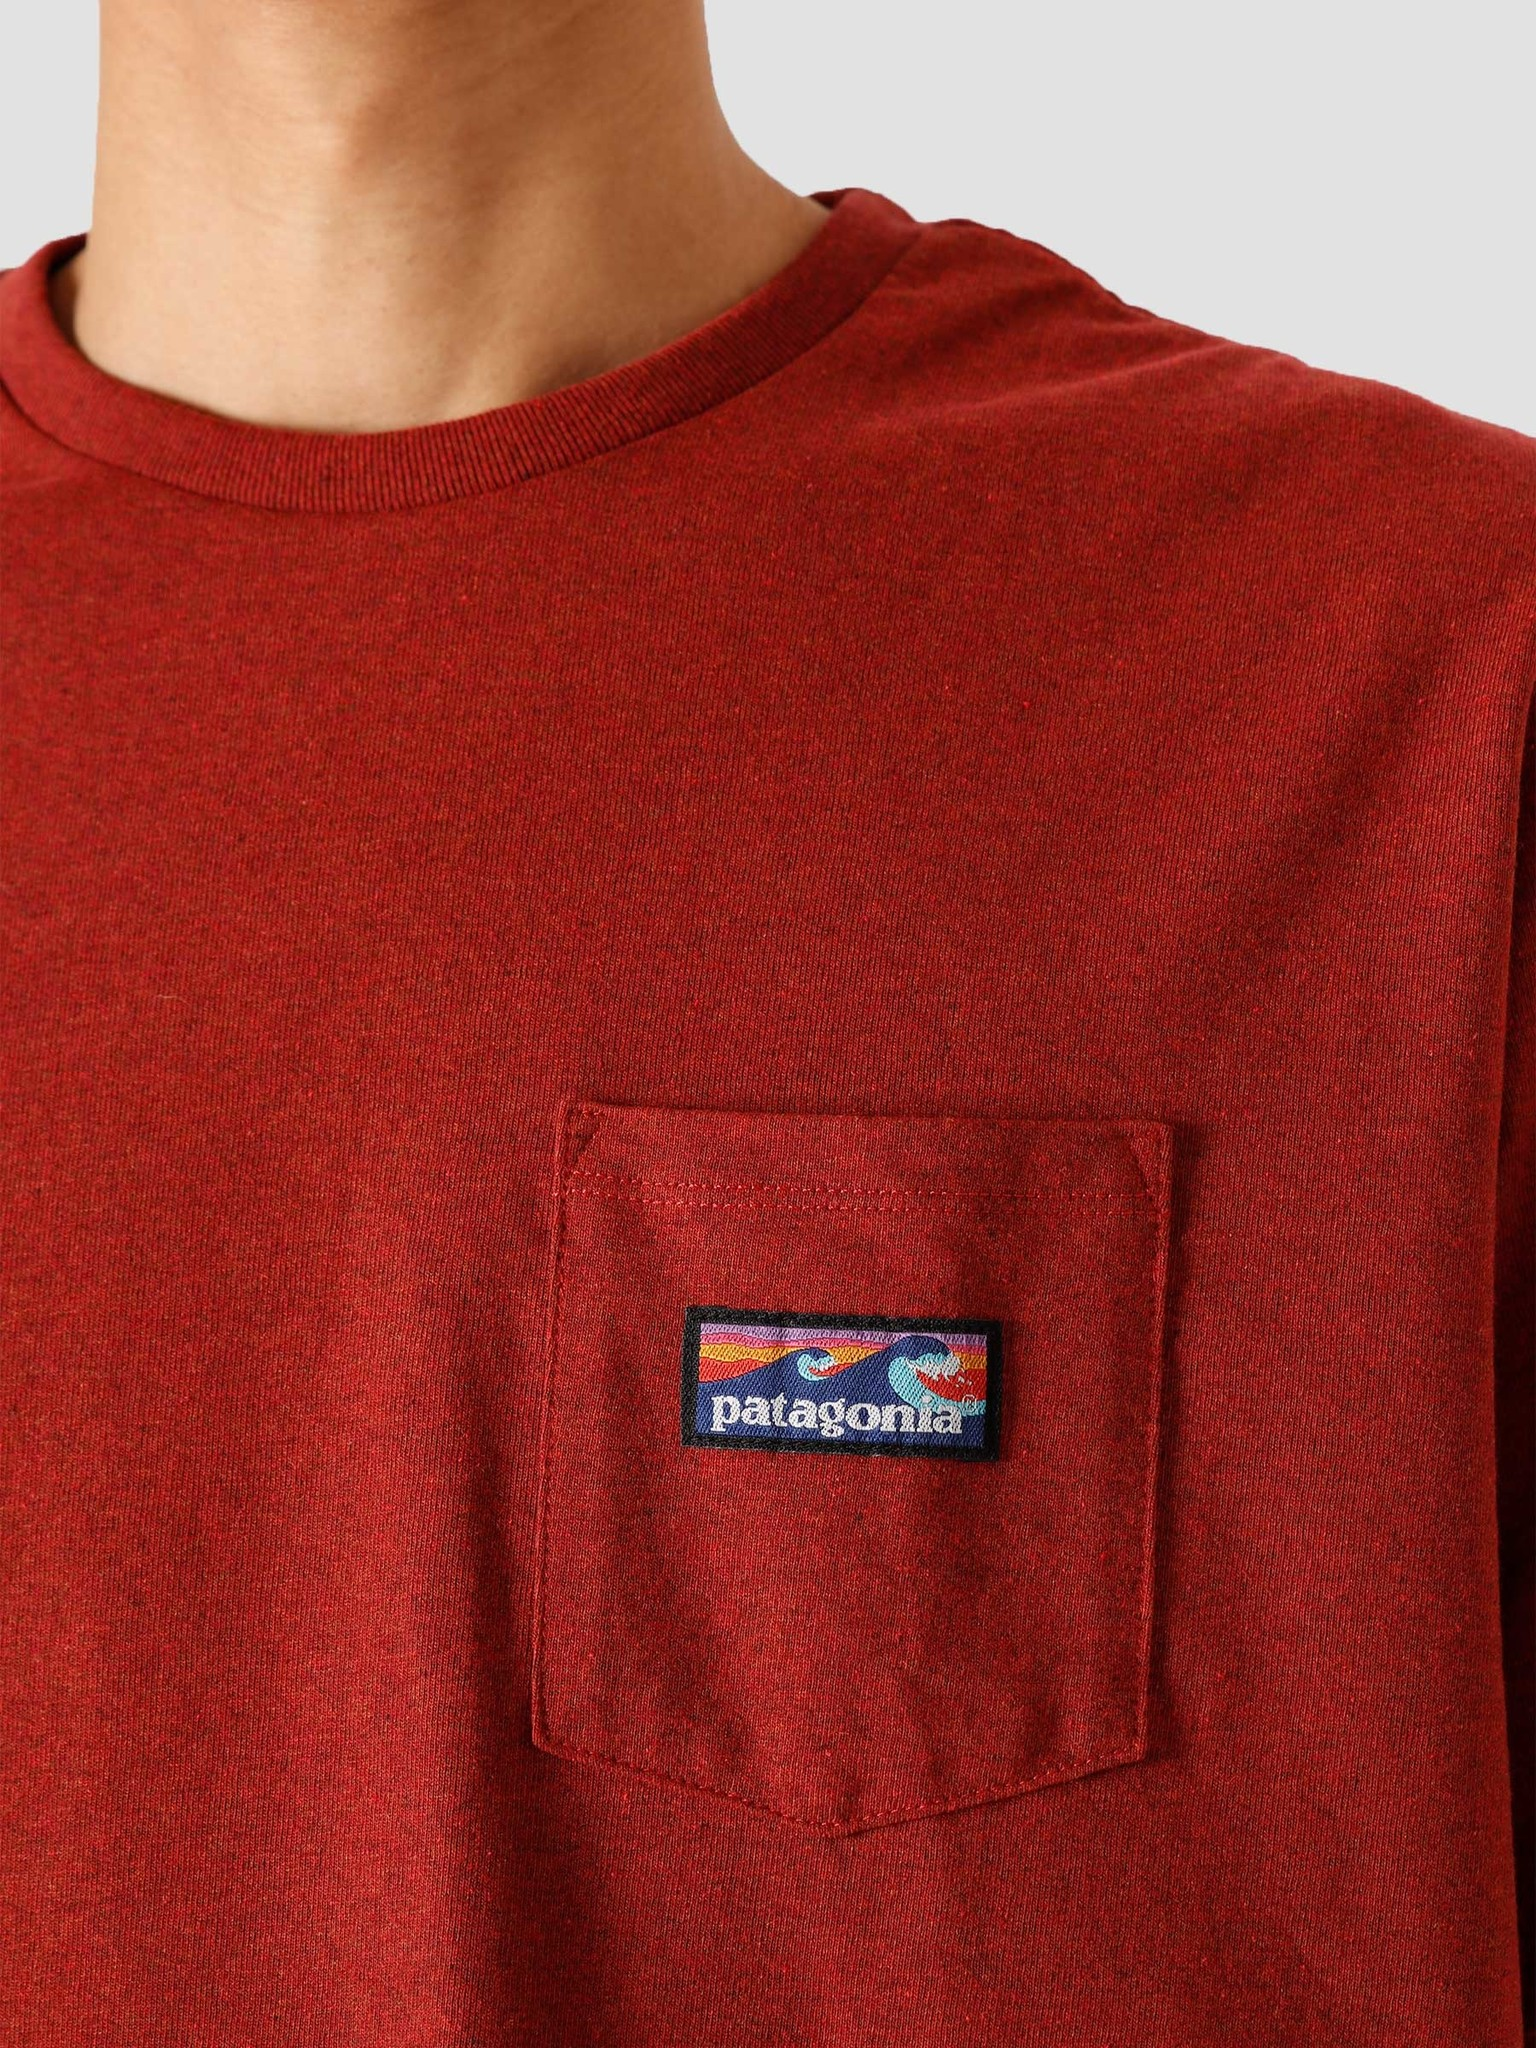 Patagonia Patagonia M's Boardshort Label Pocket Responsibili T-Shirt Barn Red 38510